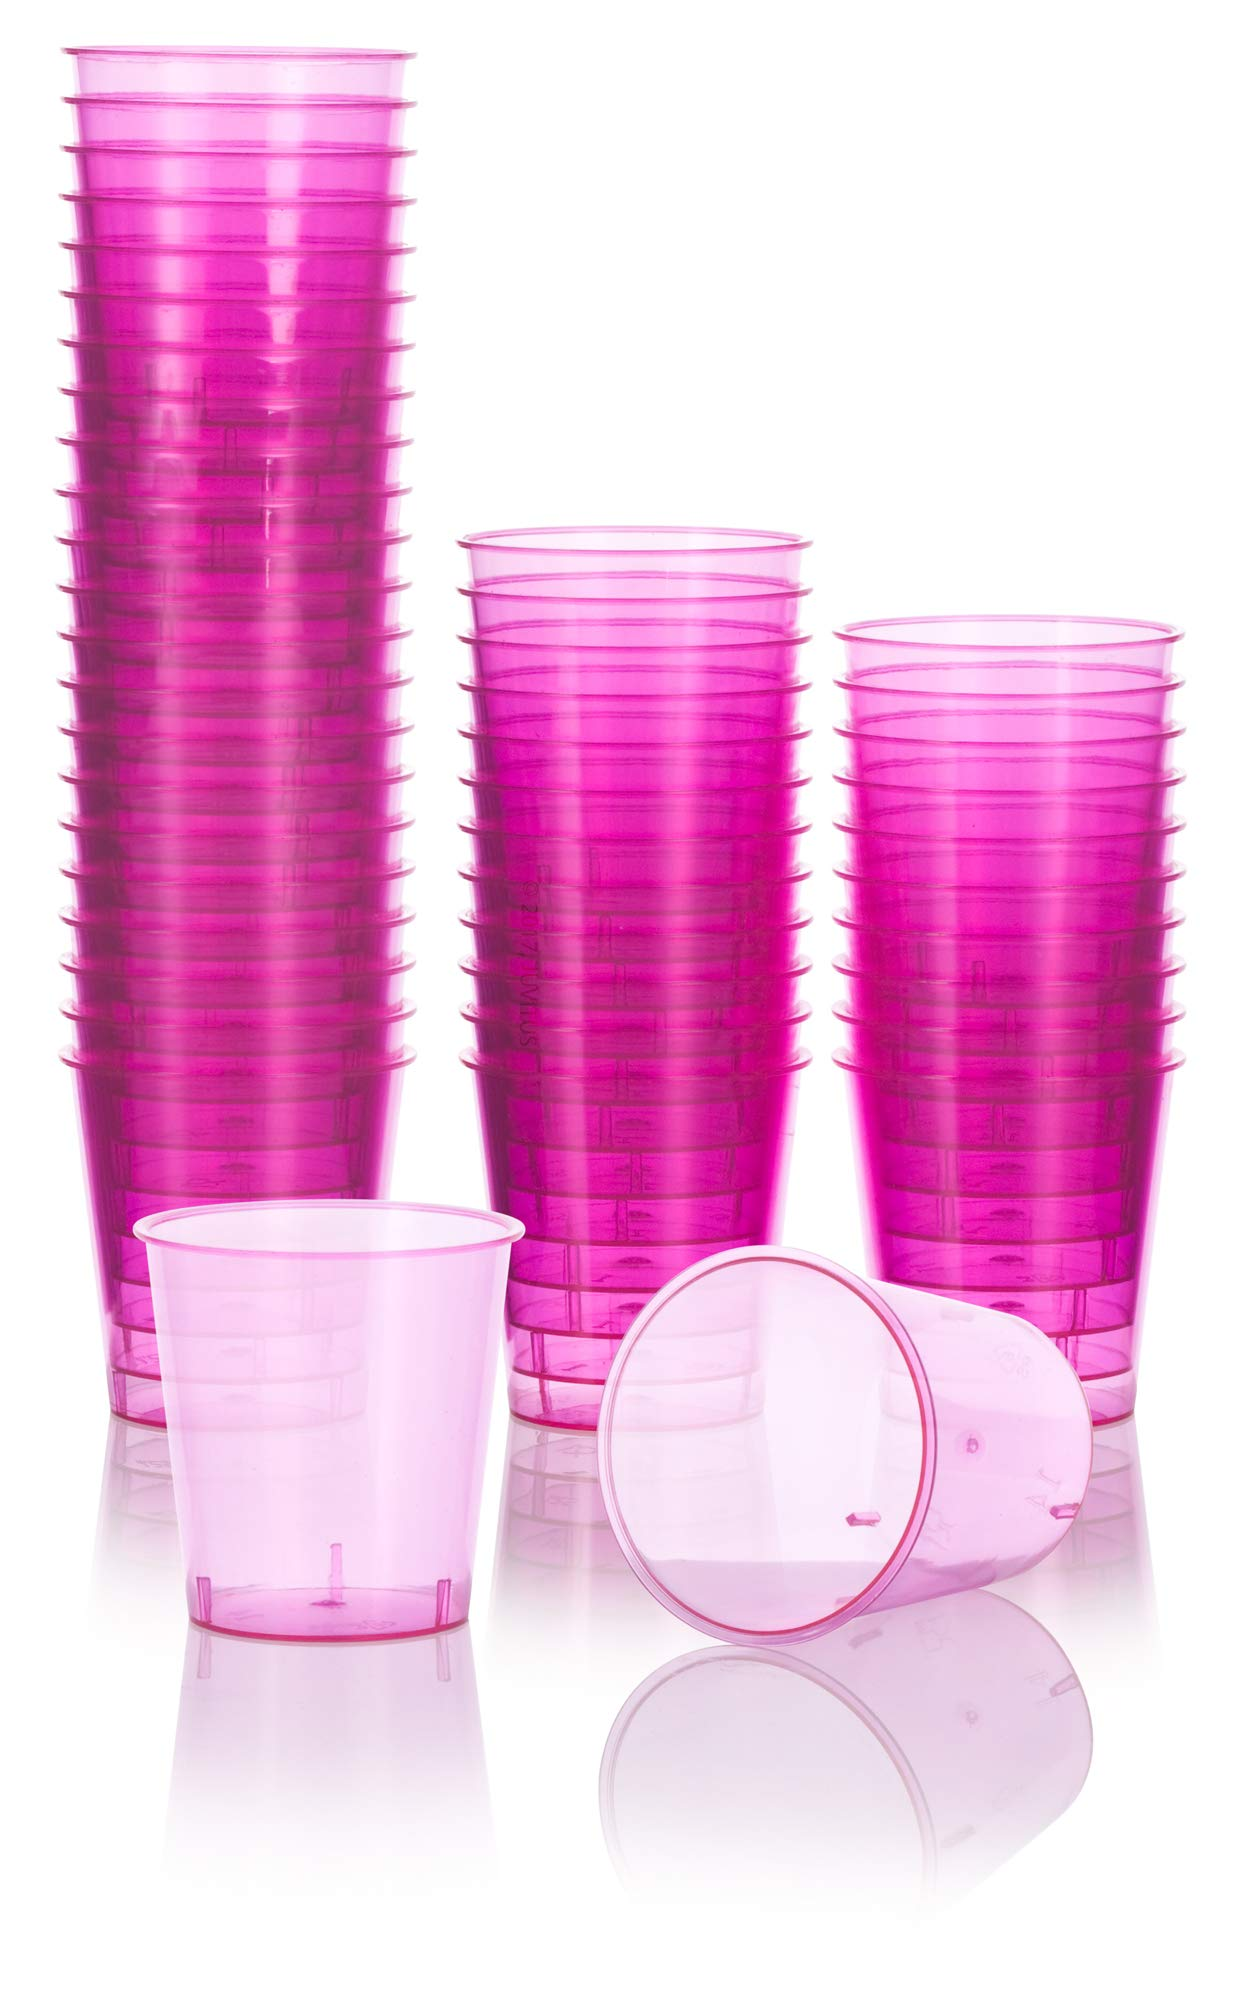 Pink Plastic Shot Cups Great for Weddings, Parties, Picnics or Party Favors (48 Pack) Size 1 oz by JUVITUS